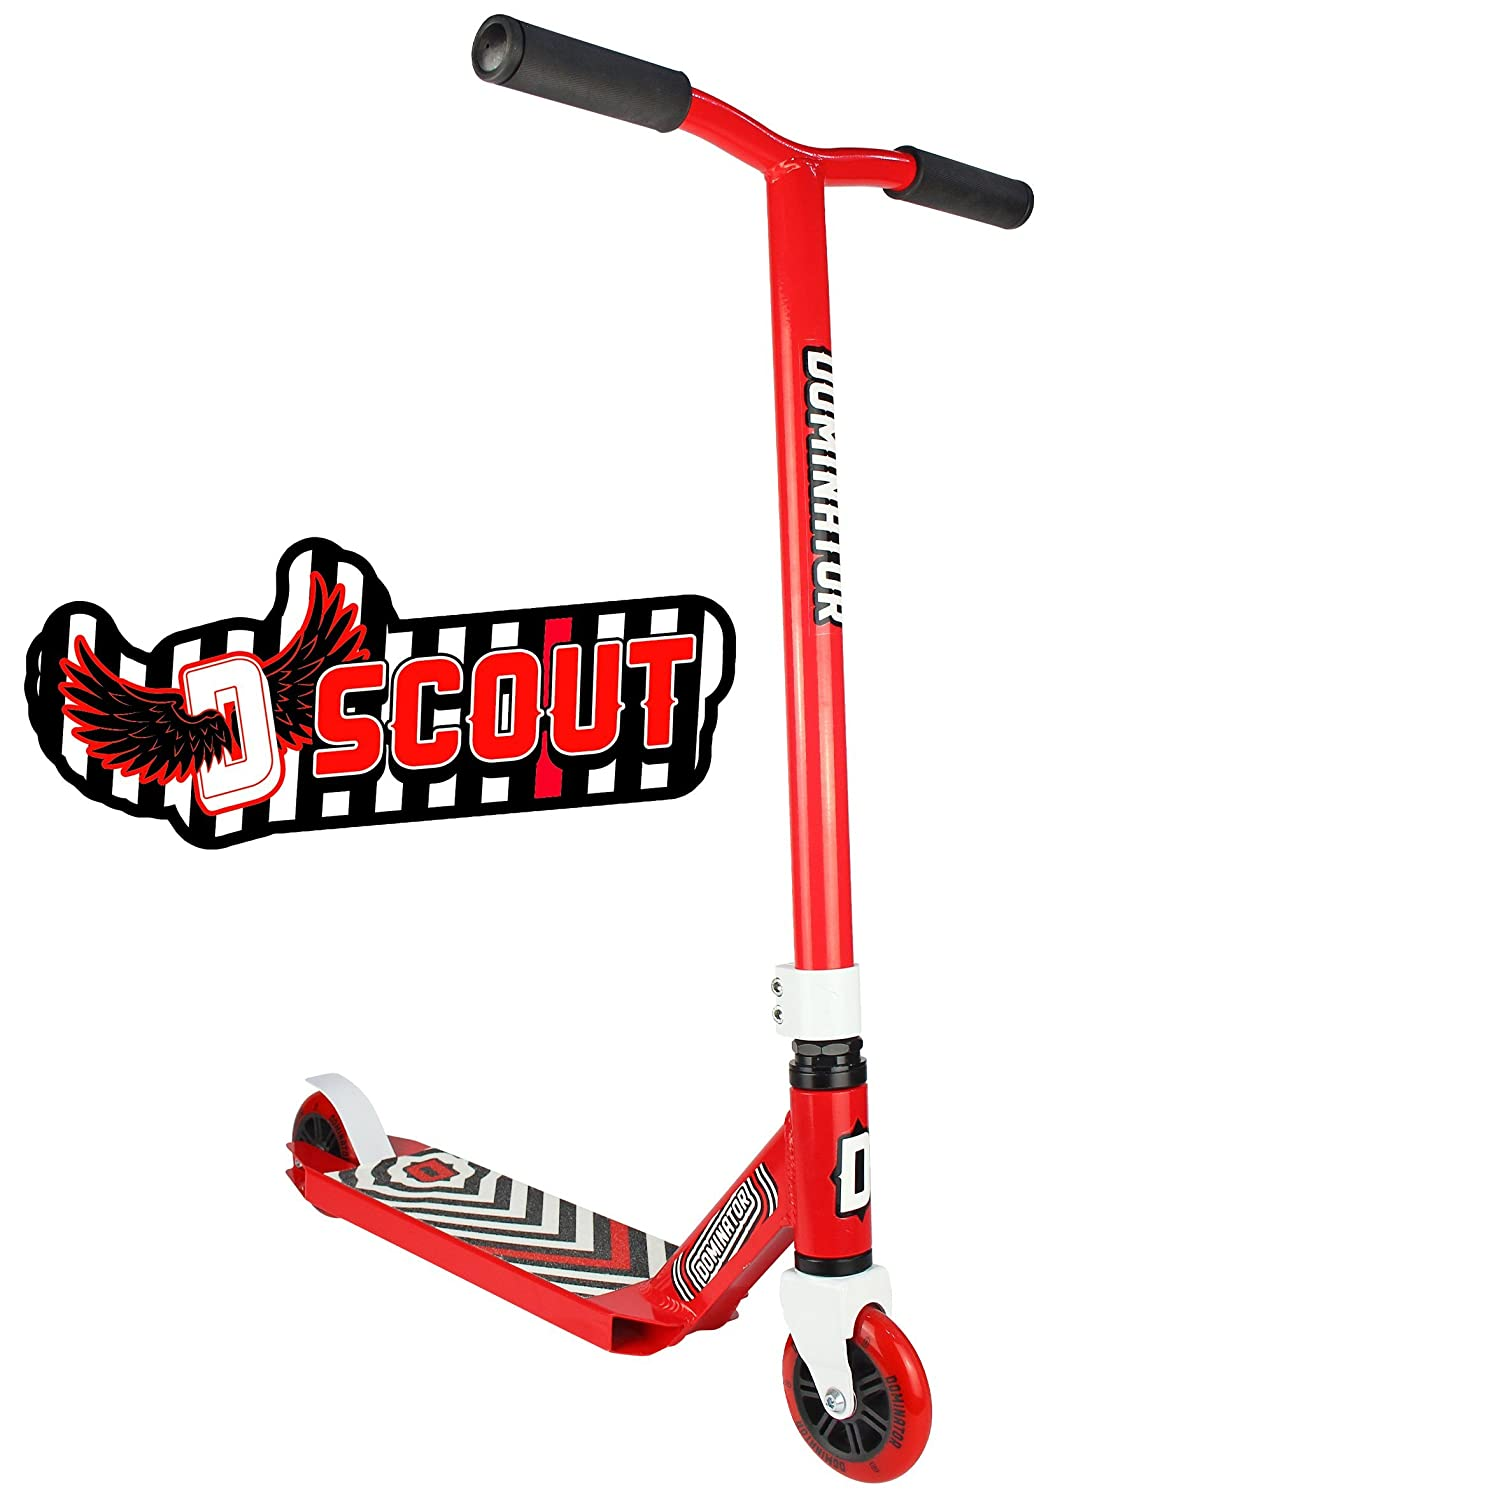 Dominator Scout Pro Scooter - Stunt Scooter - Trick Scooter (Red/Red) Dominator Scooters